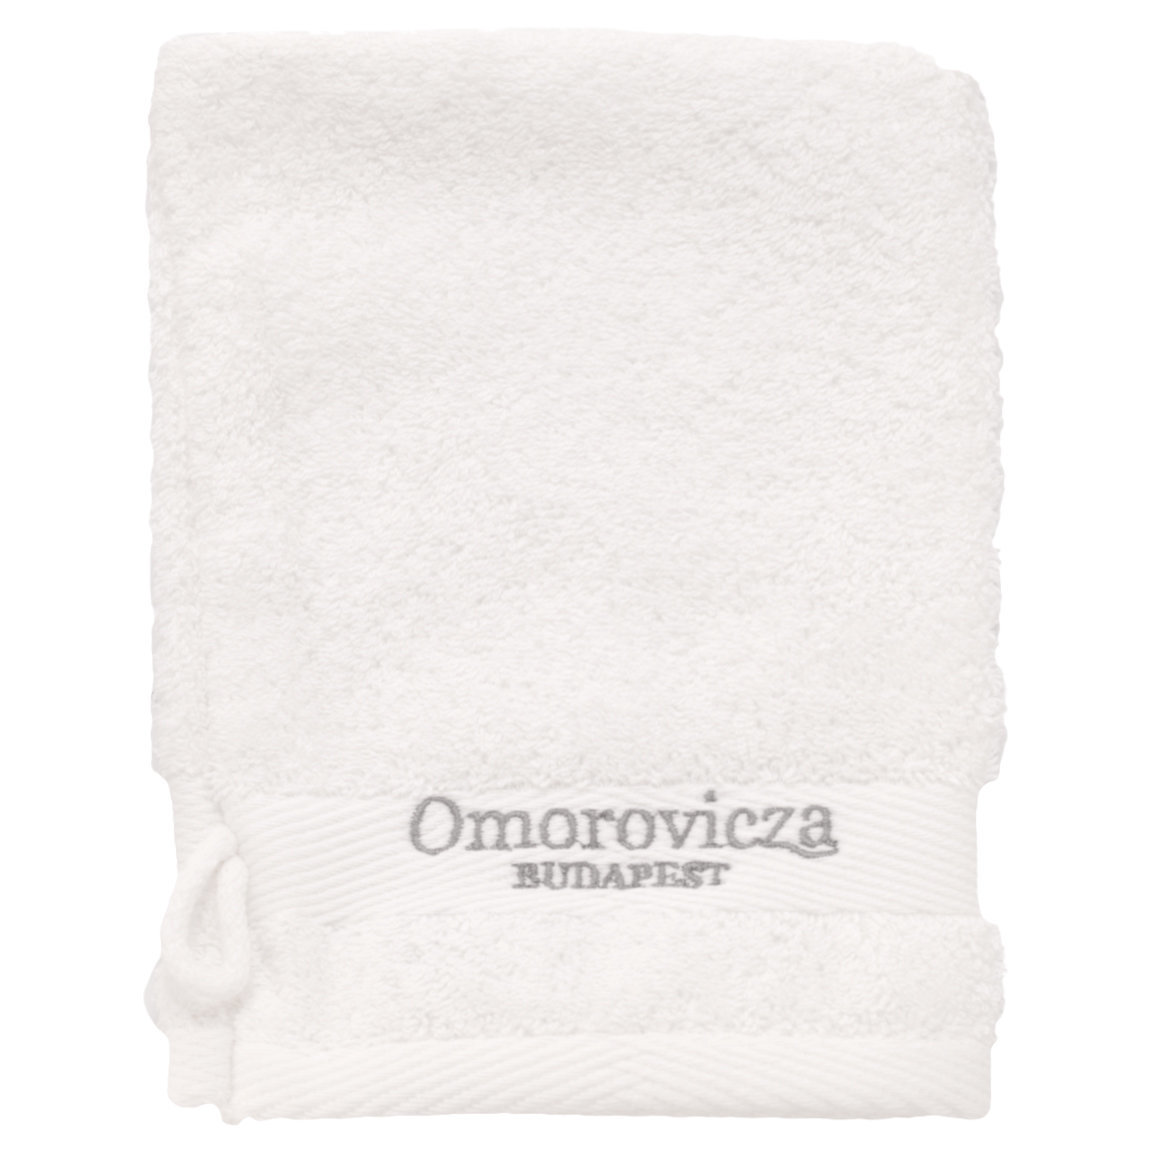 Omorovicza Cleansing Mitt product swatch.